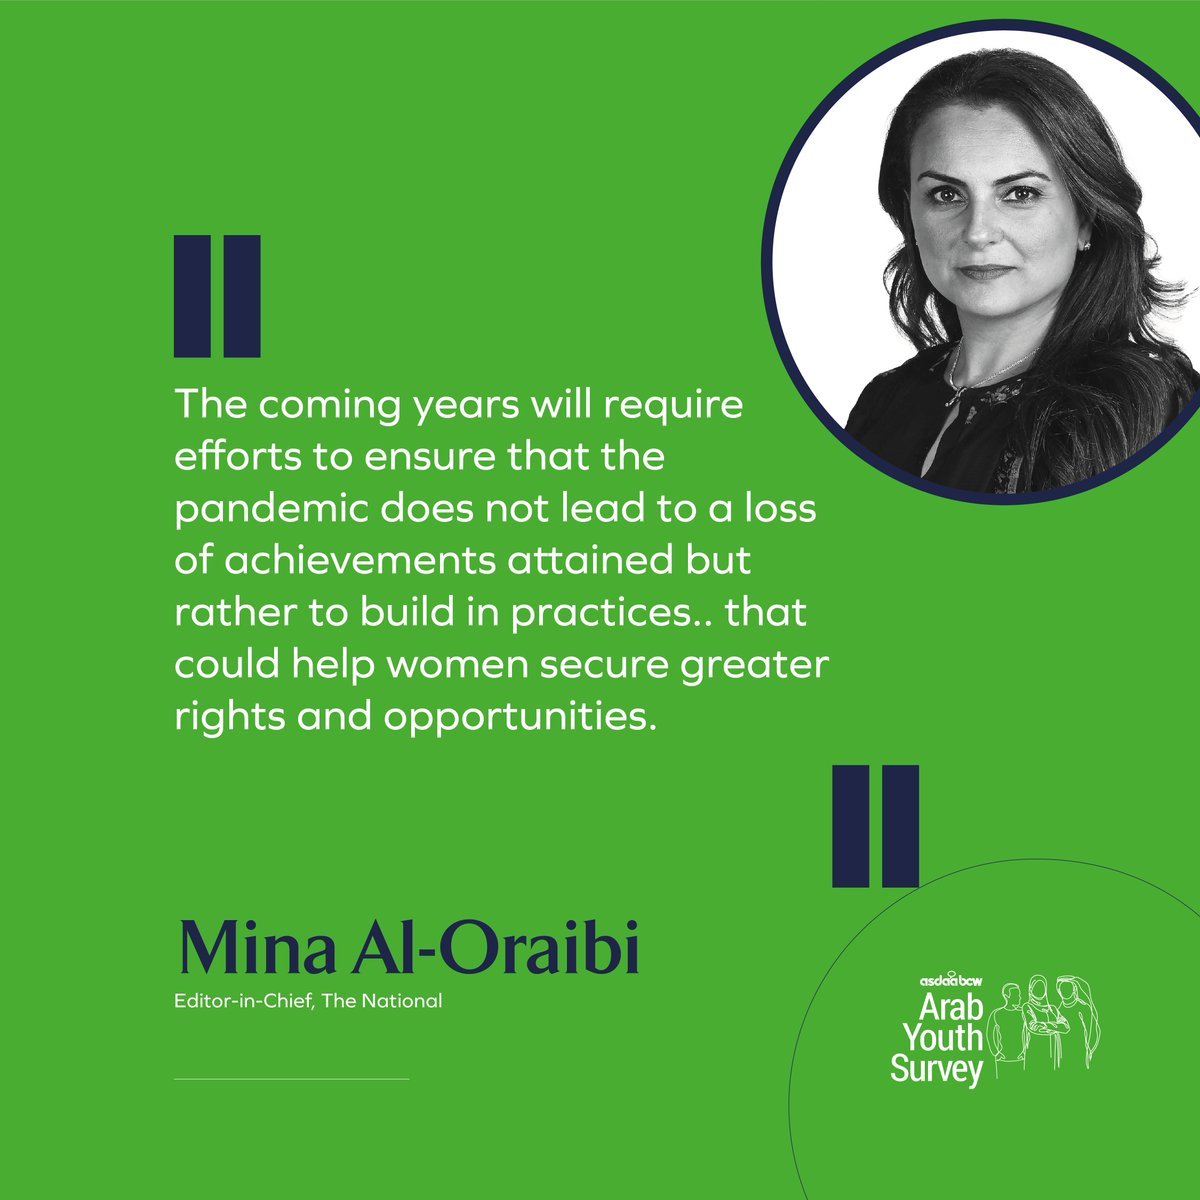 .@AlOraibi is the Editor-in-Chief of @TheNationalNews offers her insights on the 12th Annual @asdaabcw #ArabYouthSurvey's findings on the perception of gender rights. Read more by downloading the whitepaper at arabyouthsurvey.com